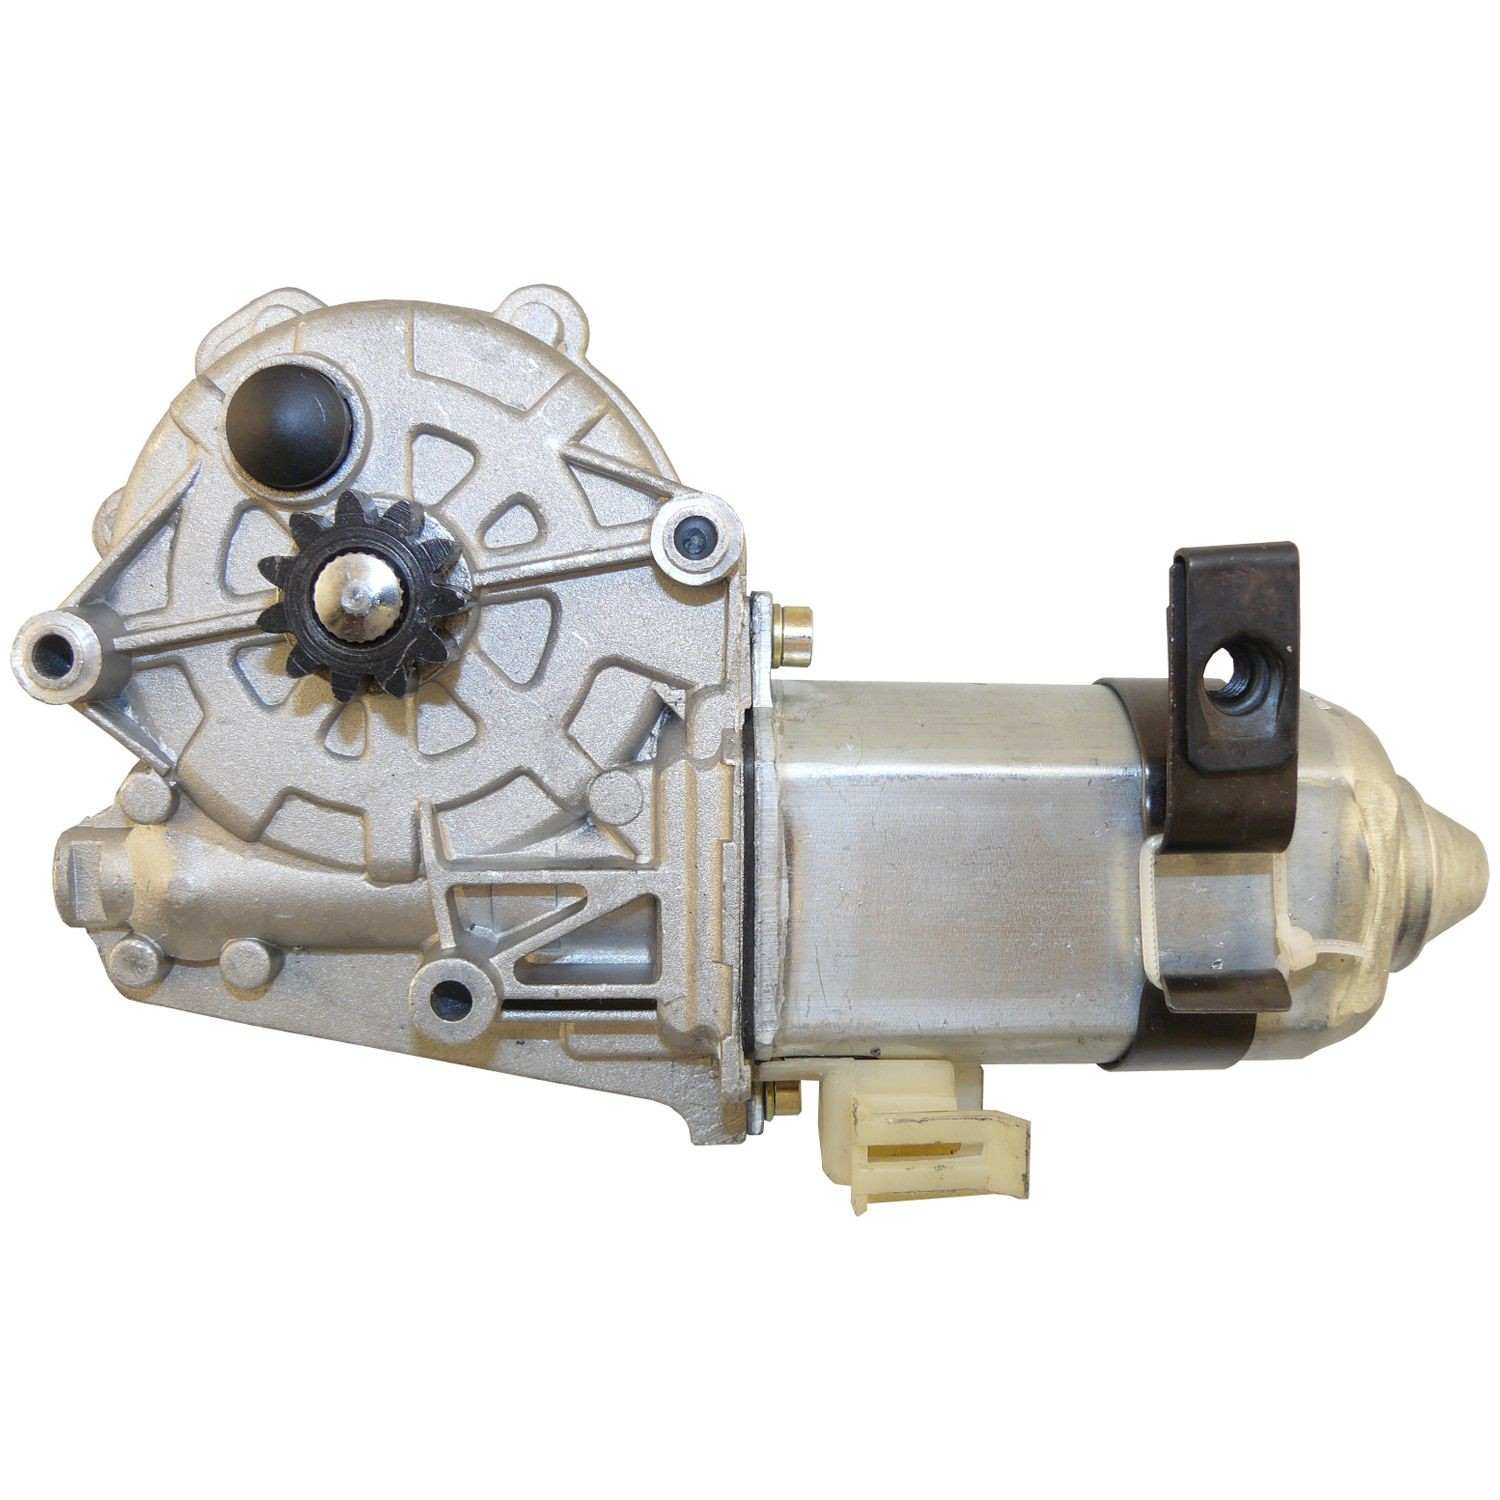 MAGNETI MARELLI OFFERED BY MOPAR - Power Window Motor - MGM 1AMWM83117